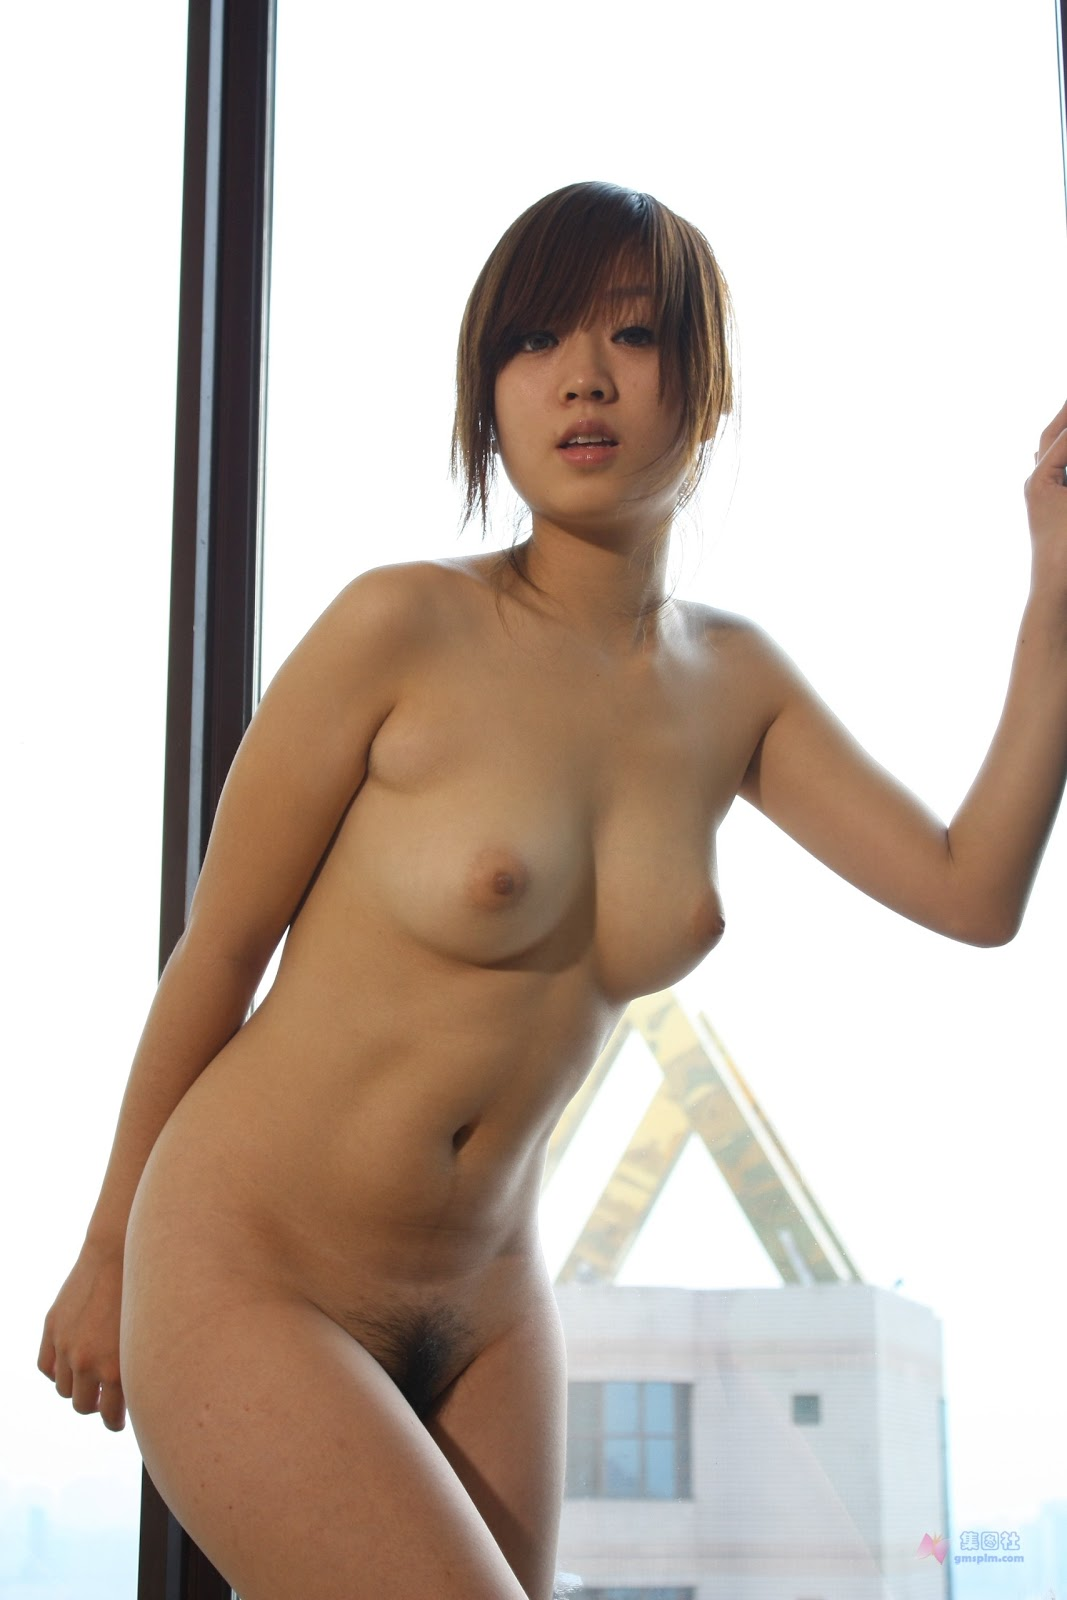 Beautiful Nude Japan Girls